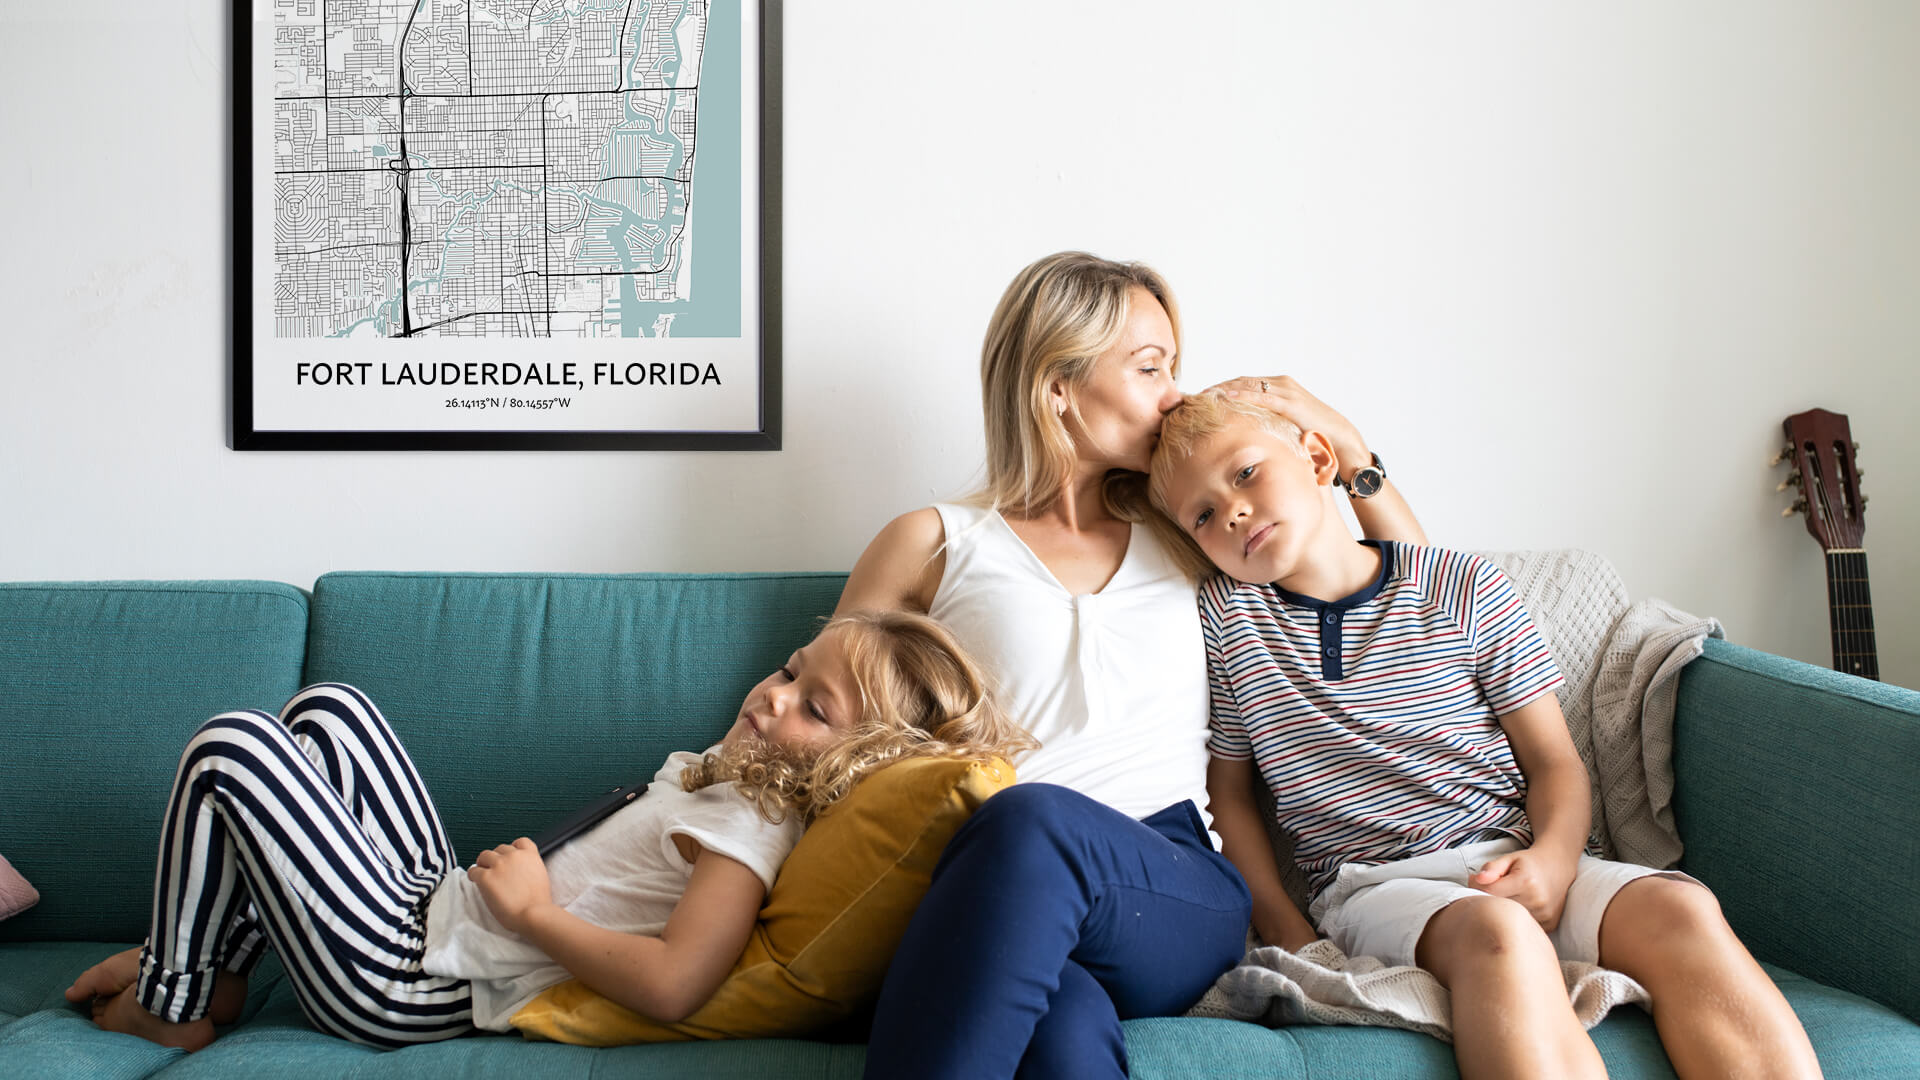 Fort Lauderdale map poster